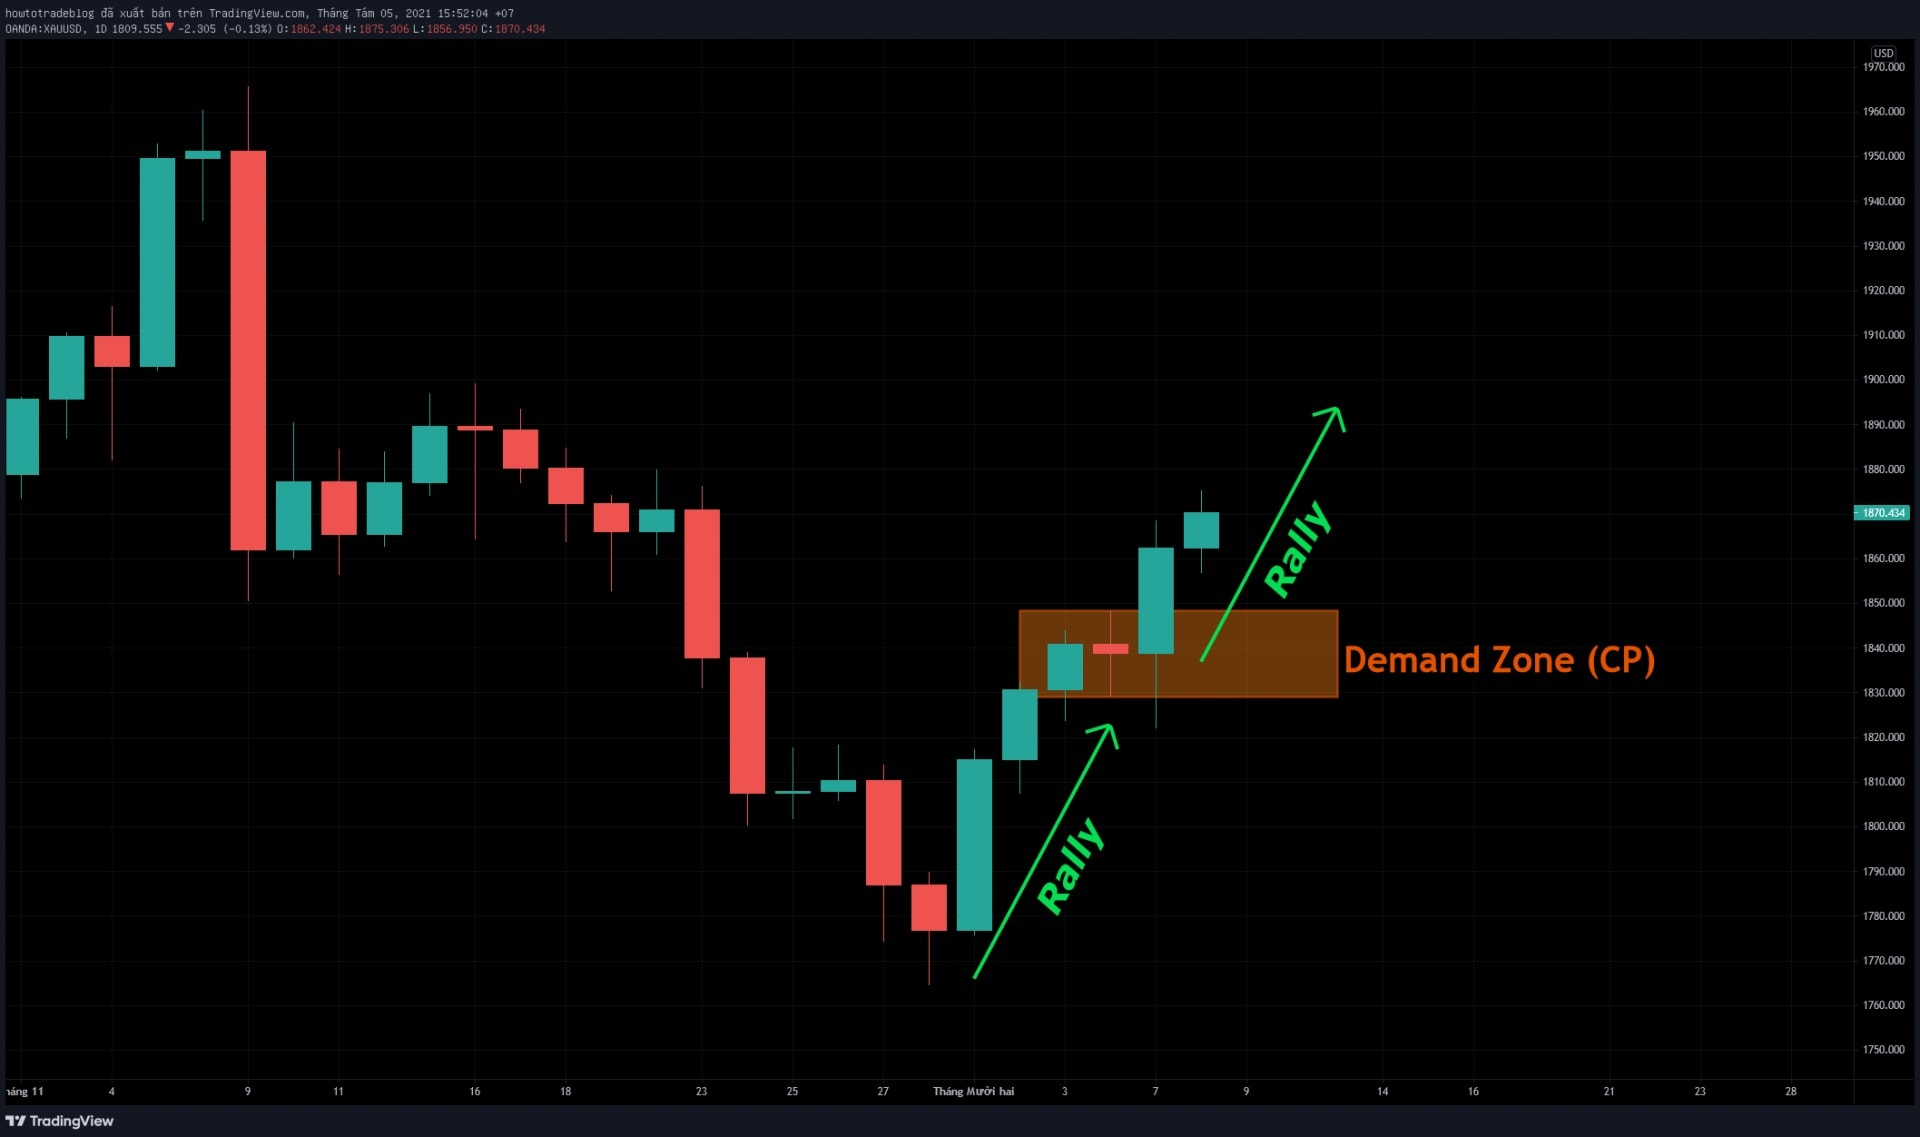 An example of the reversal Demand pattern